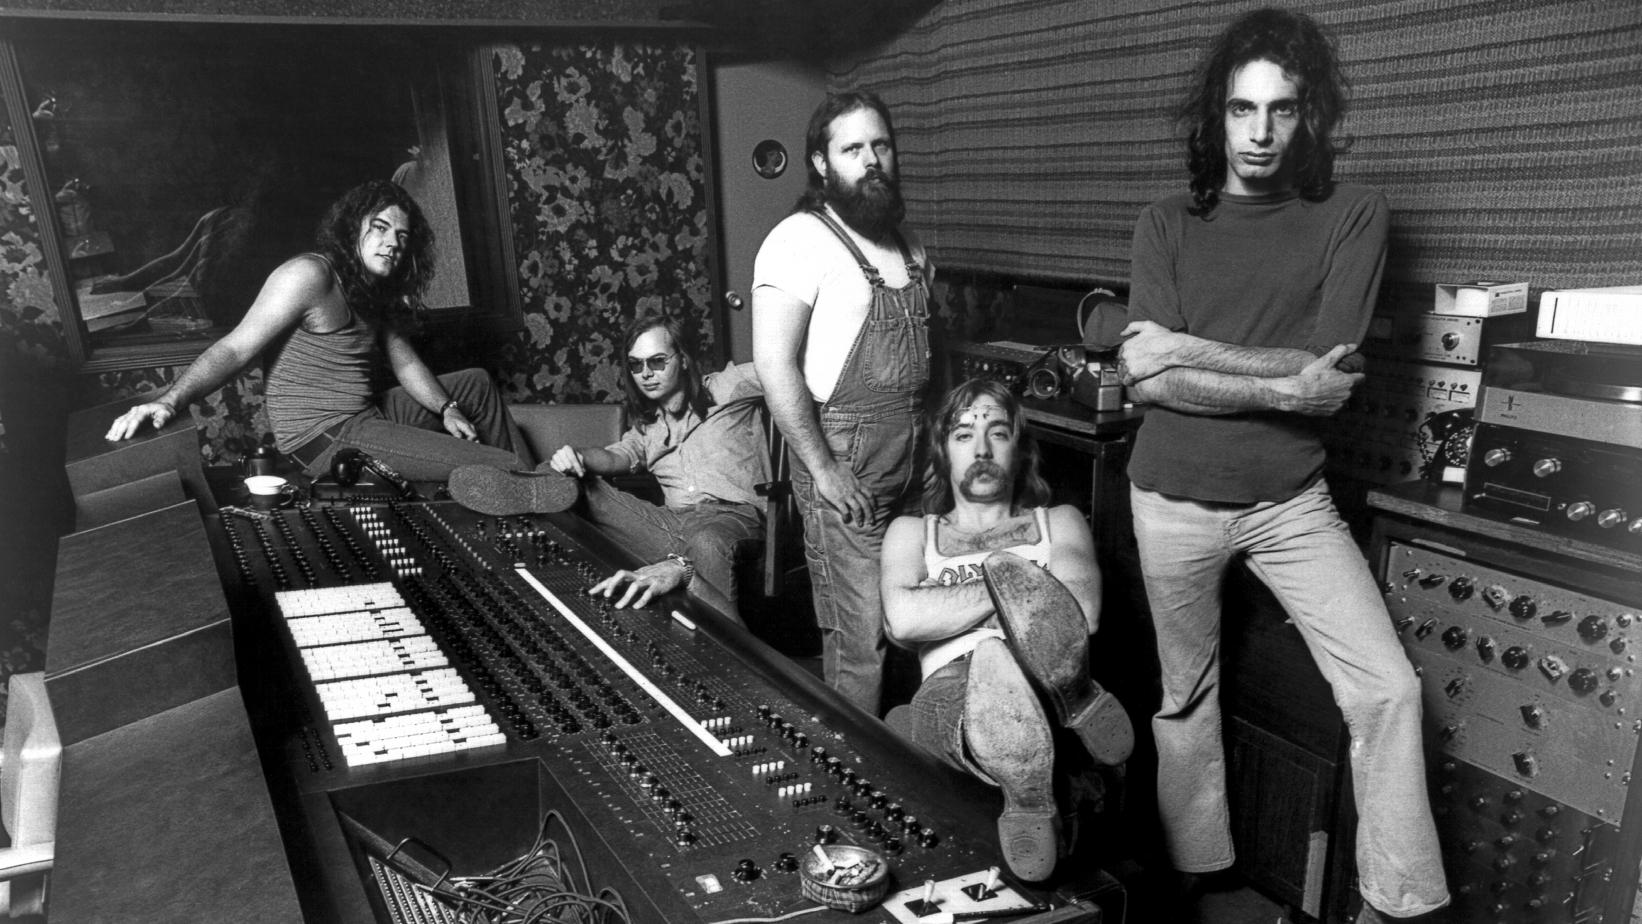 Steely Dan at The Village in 1973